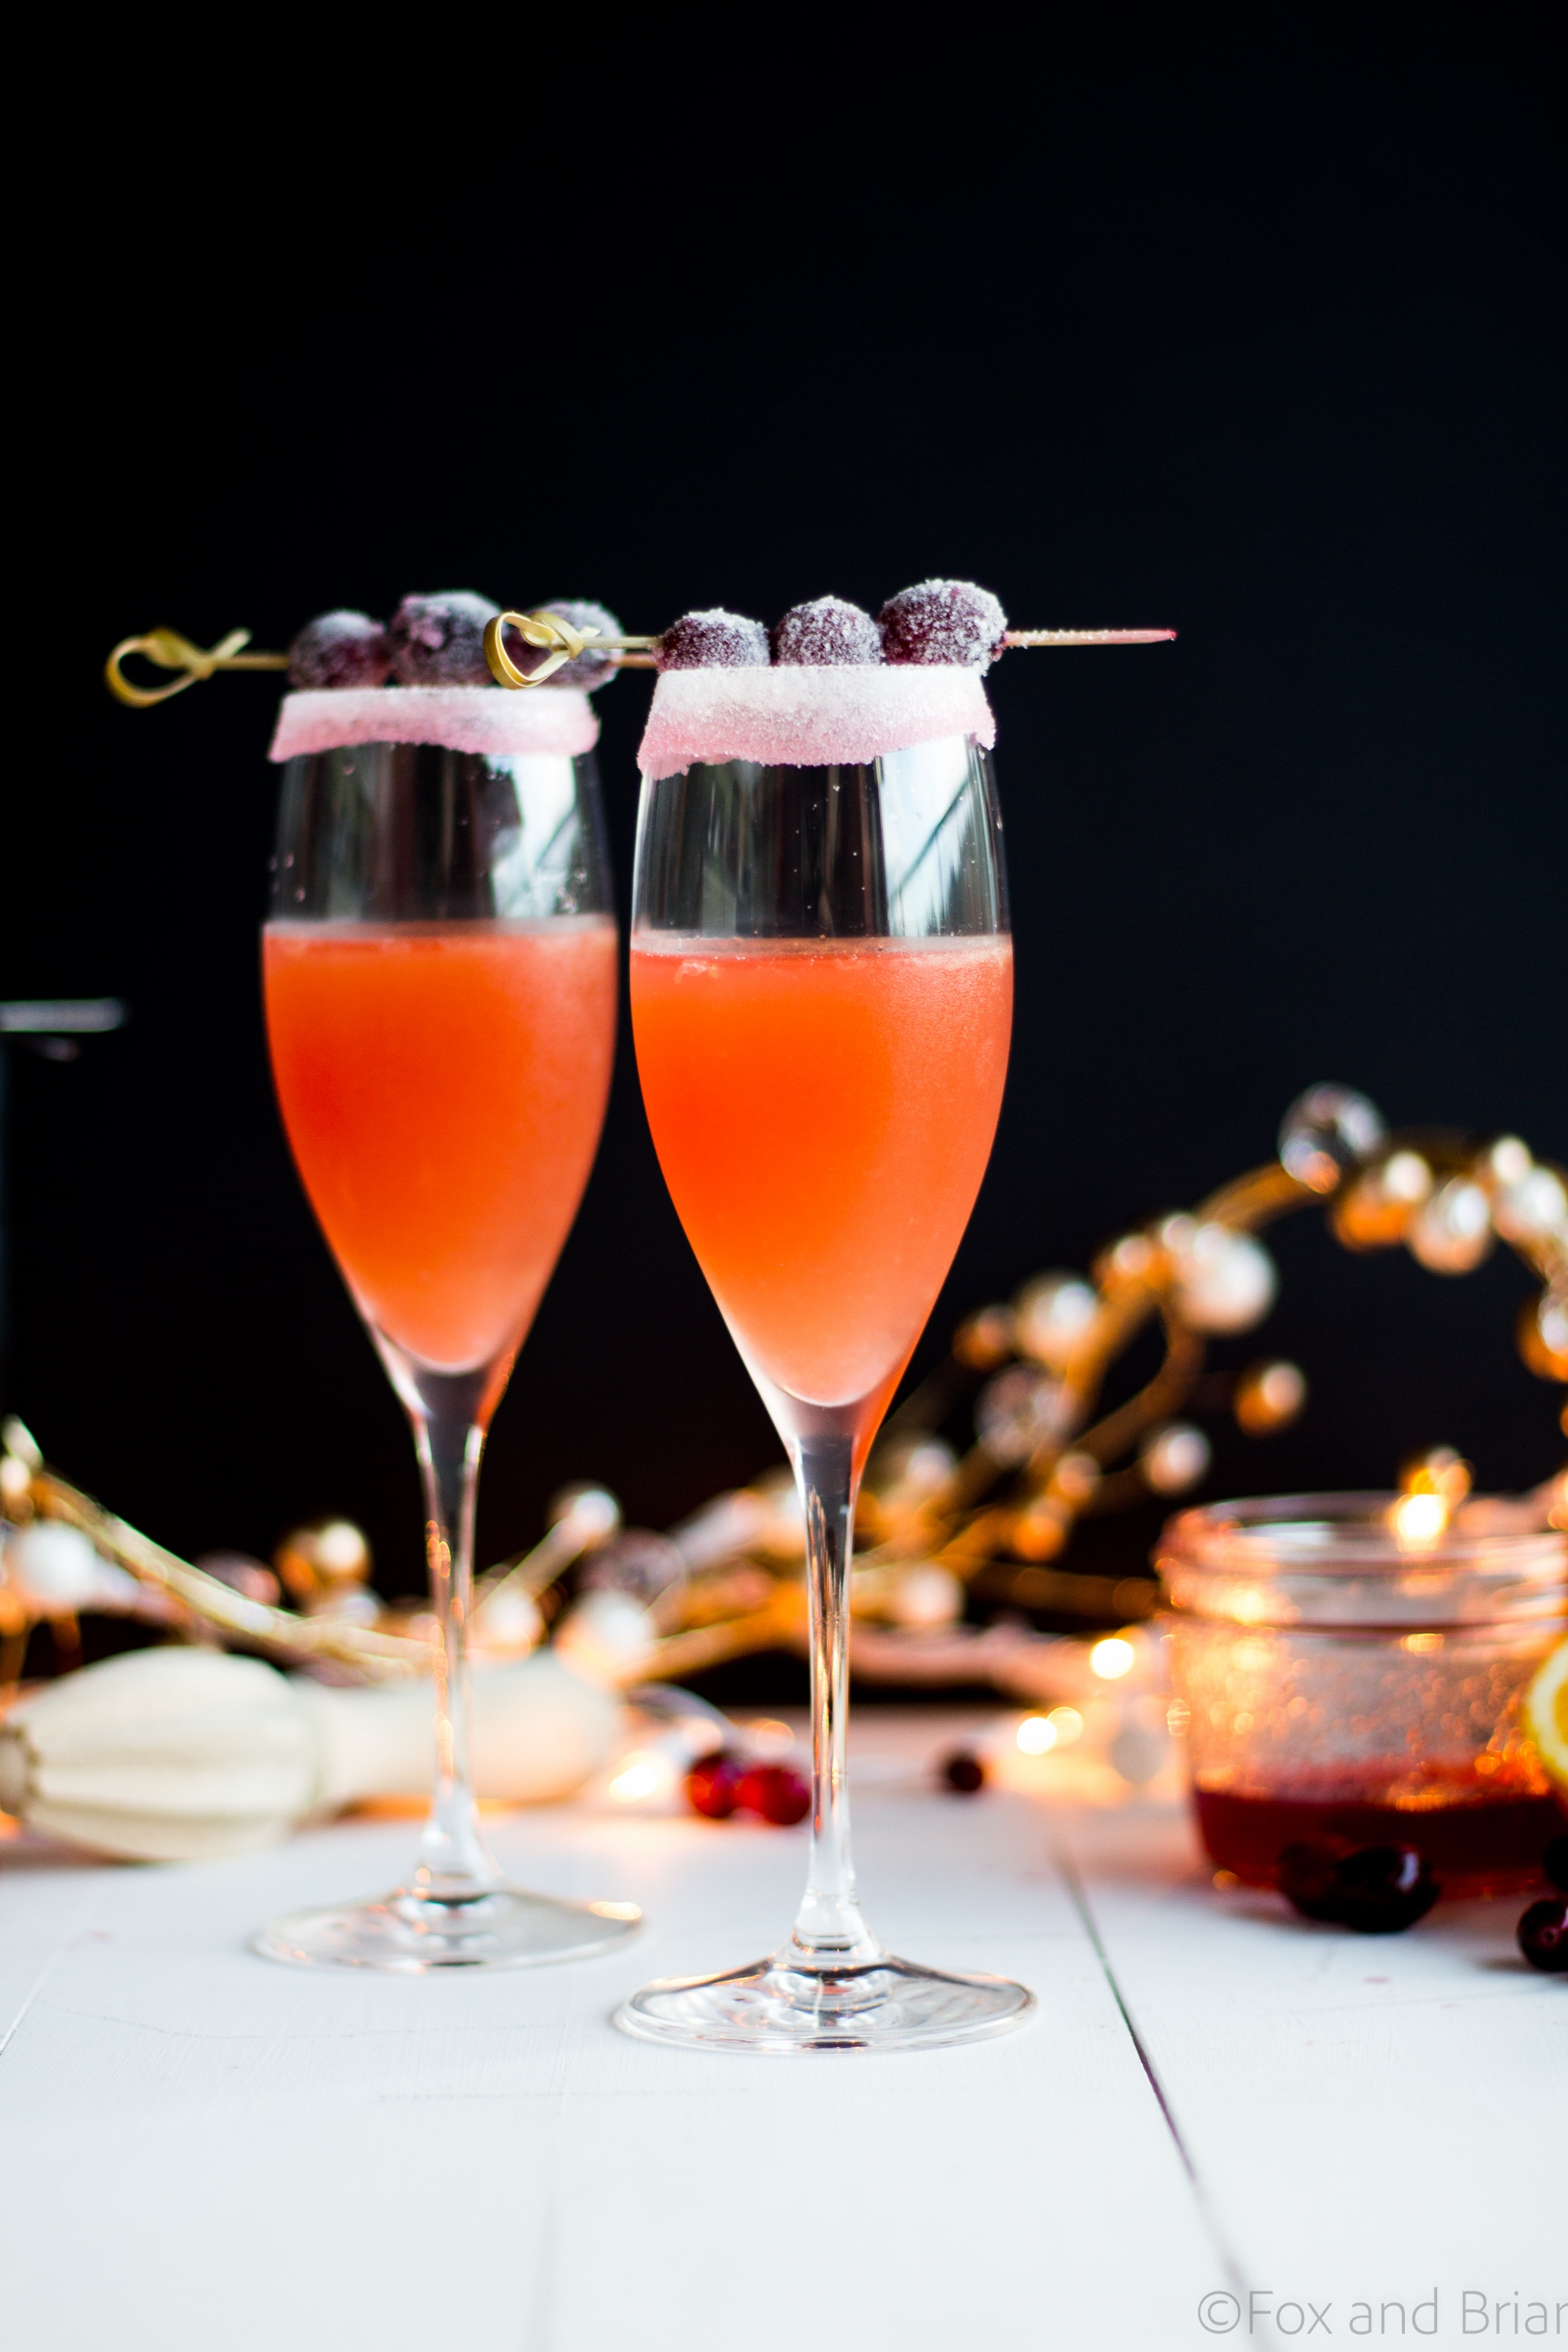 Homemade cranberry orange syrup takes this standby cocktail up a notch. Cranberry Sauce, Grand Marnier, Orange juice and cranberry orange syrup combine to make a festive winter cocktail. There is a non-alcoholic mocktail version as well!